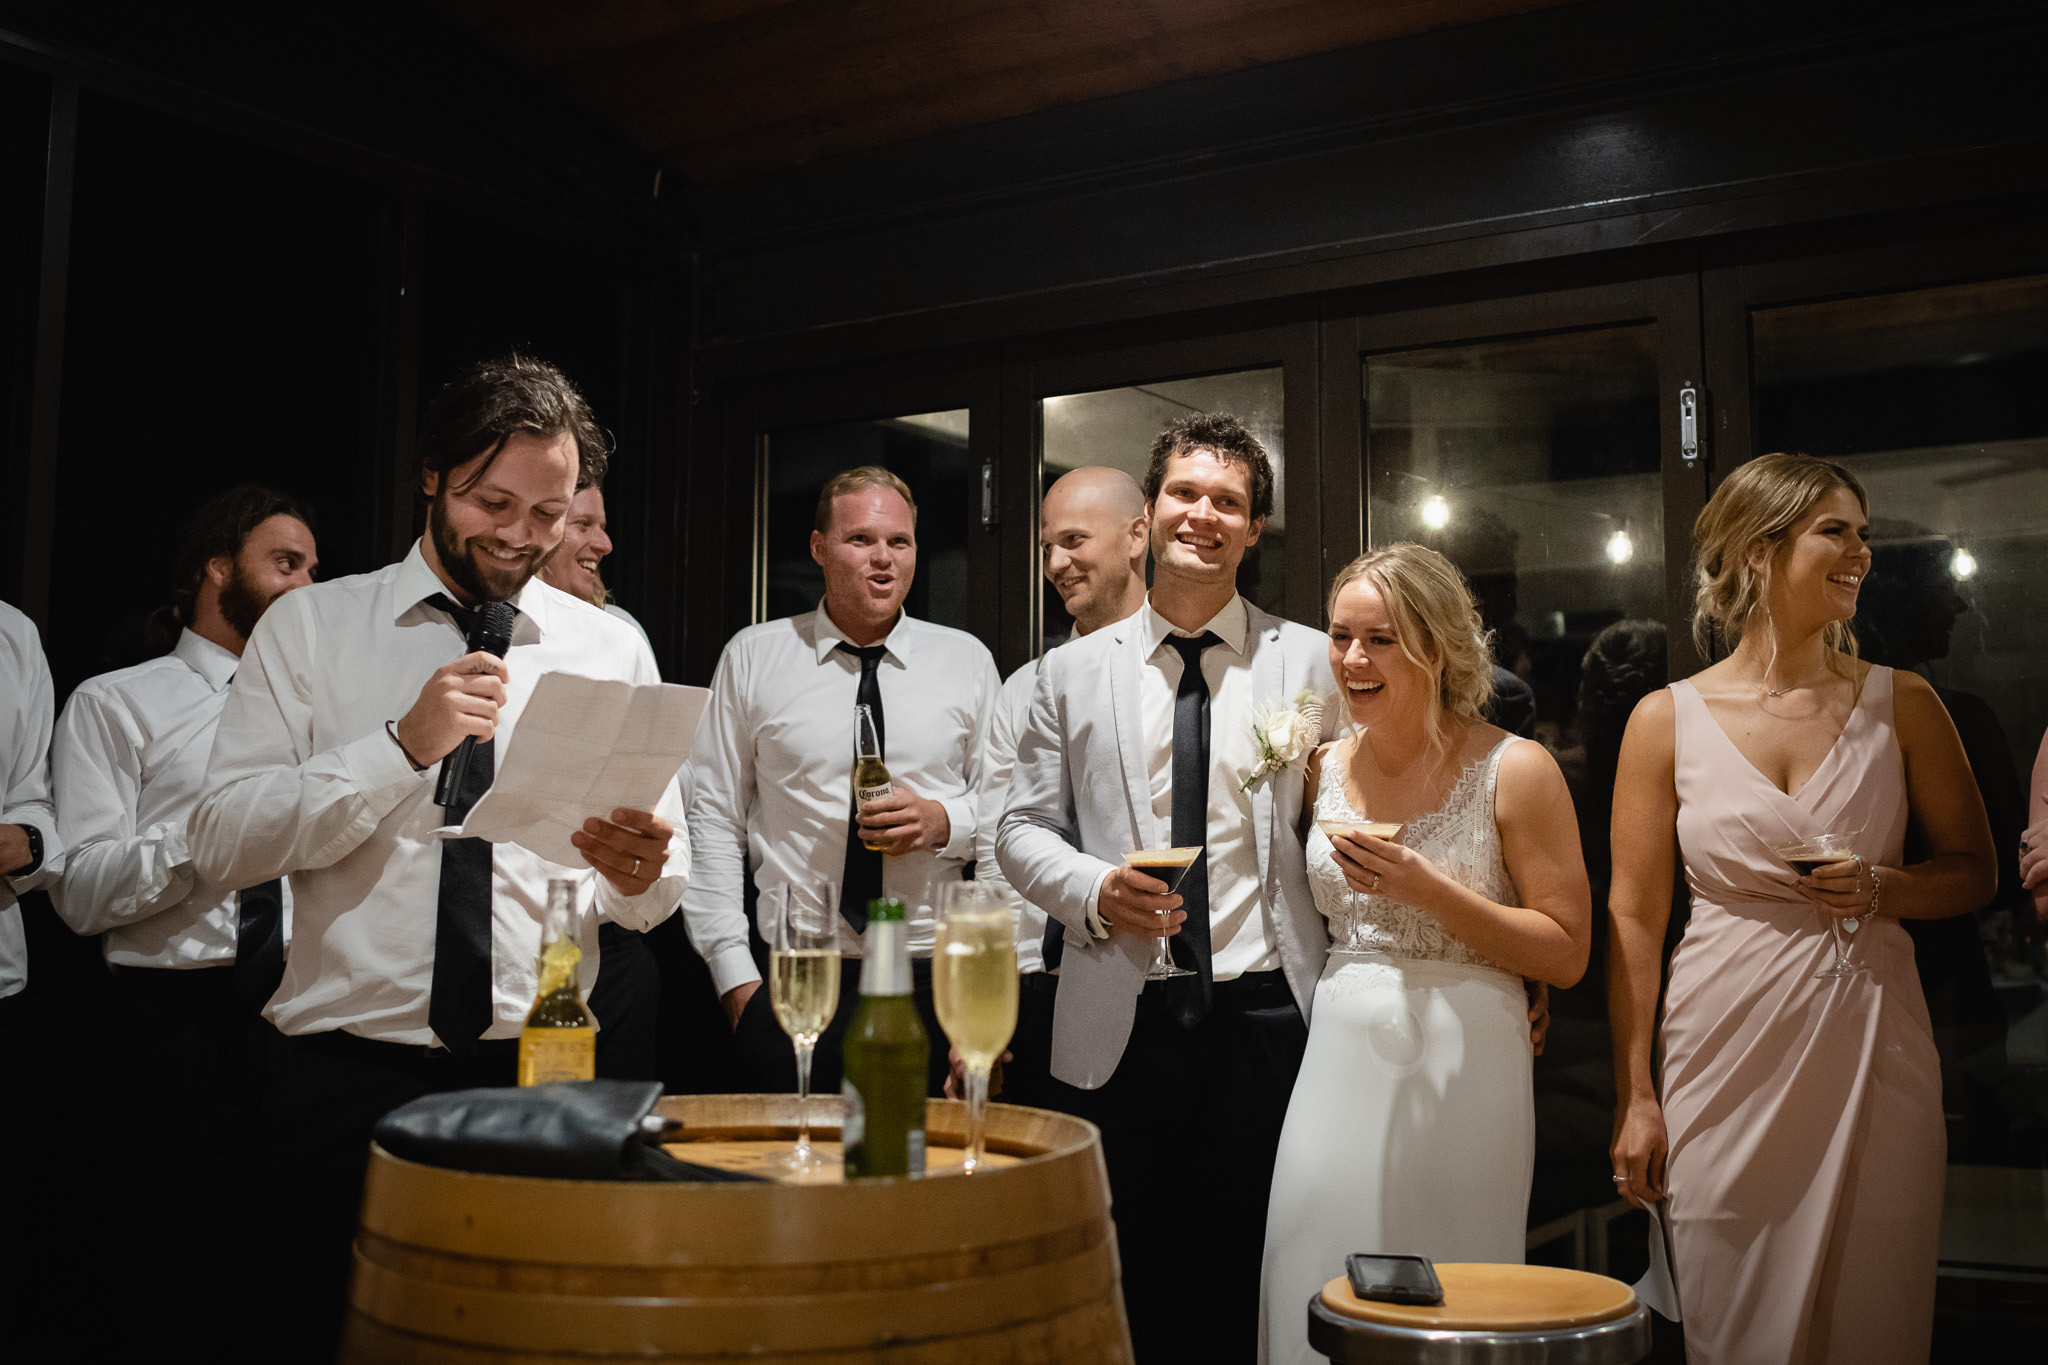 bride and groom laughing while groomsman gives speech at their wedding